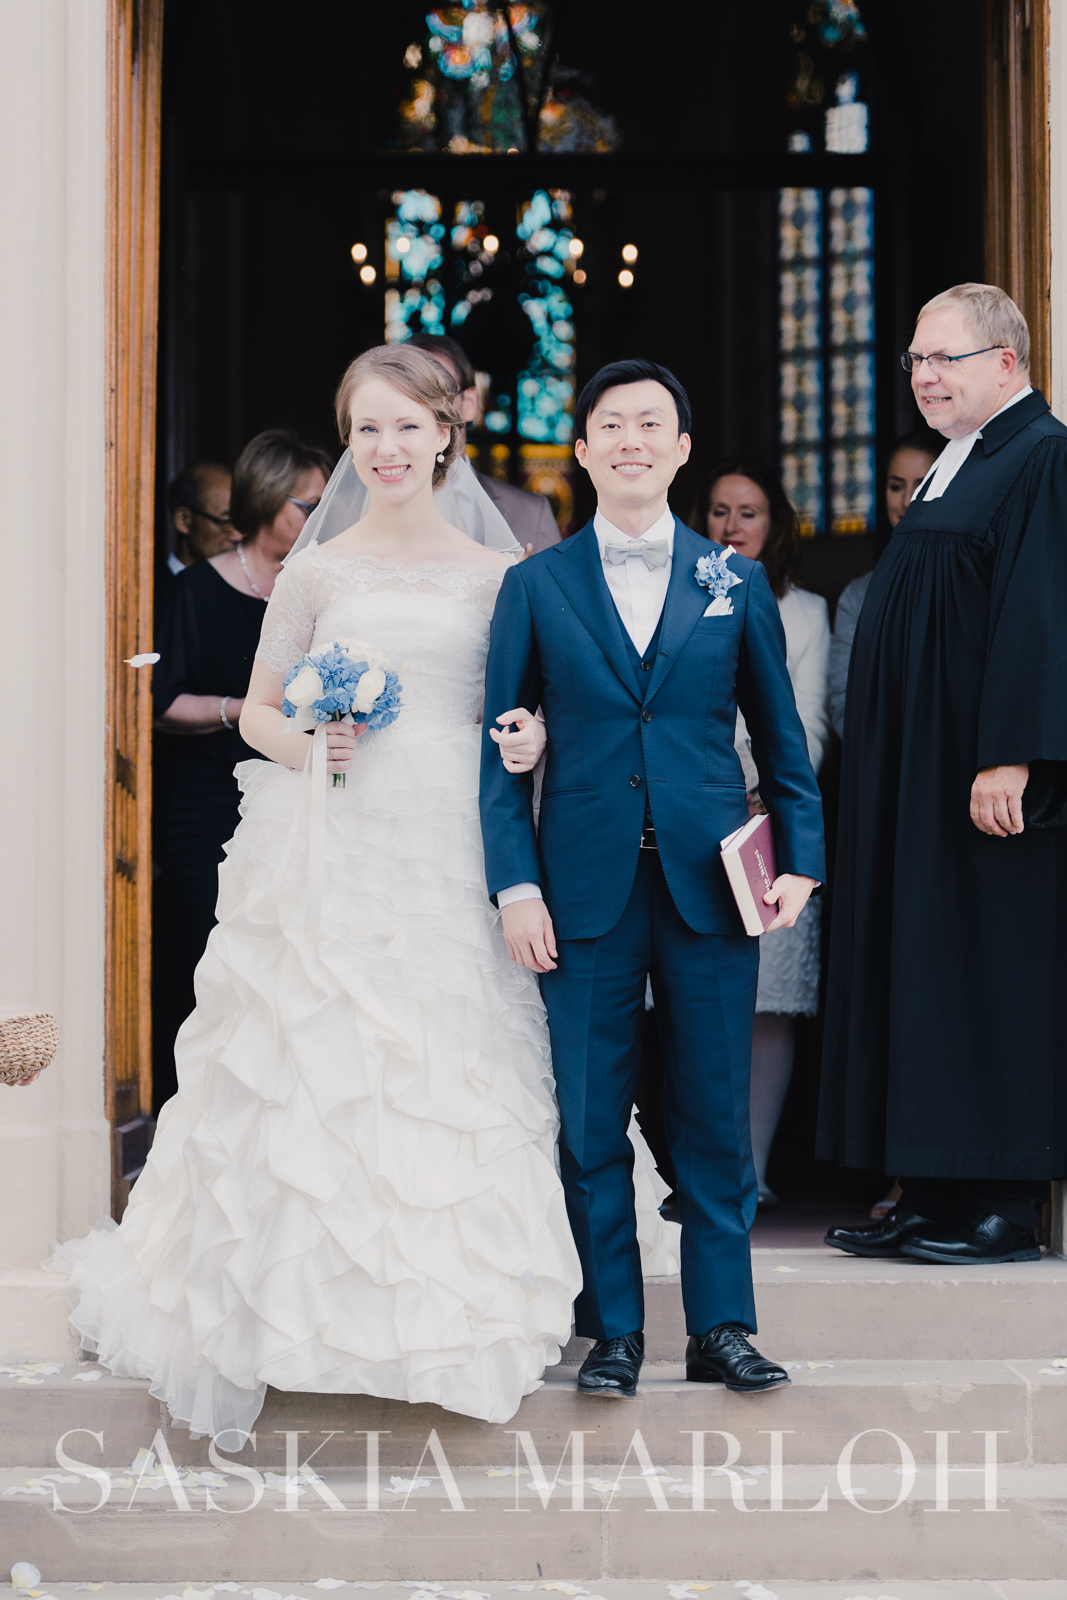 KLOSTER-EBERBACH-GERMAN-JAPANESE-WEDDING-HOCHZEIT-FOTO-PHOTO-SASKIA-MARLOH-21